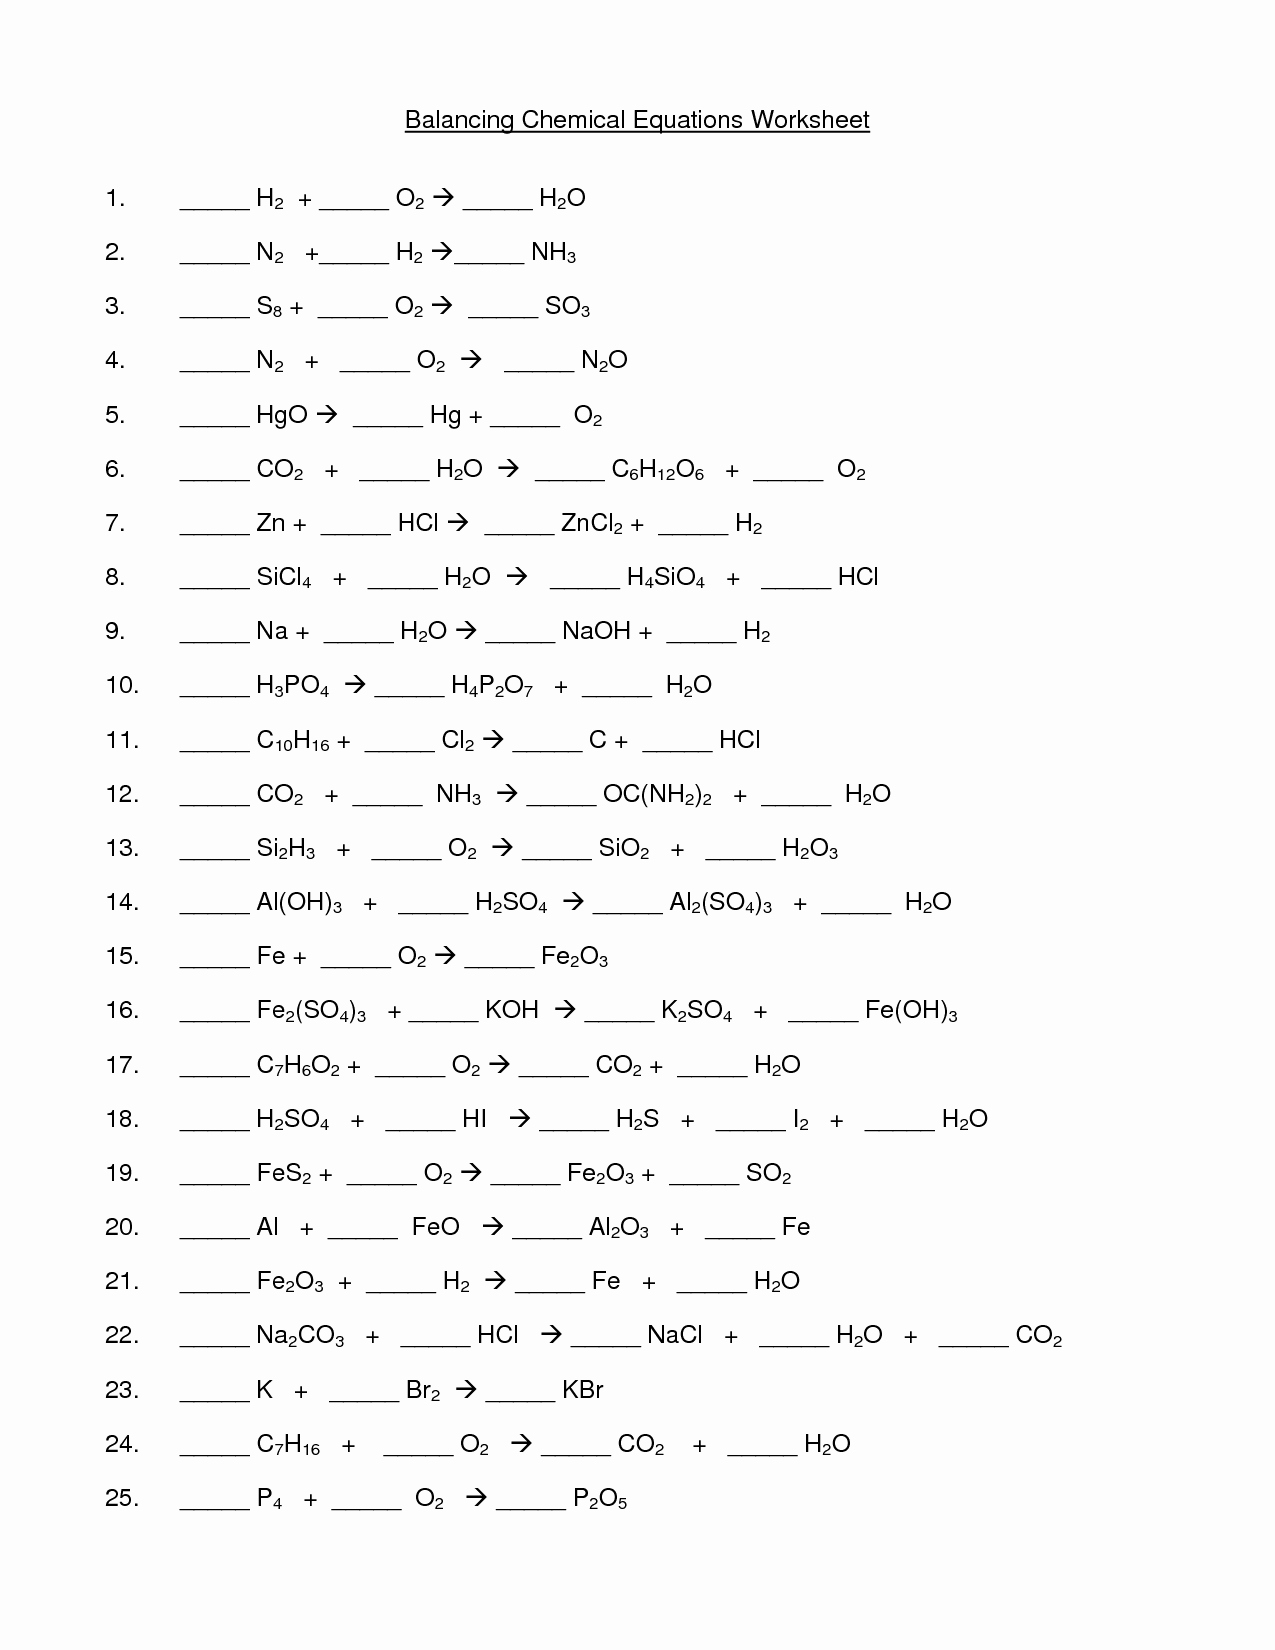 Balancing Equation Worksheet with Answers New 12 Best Of Balancing Chemical Equations Worksheet